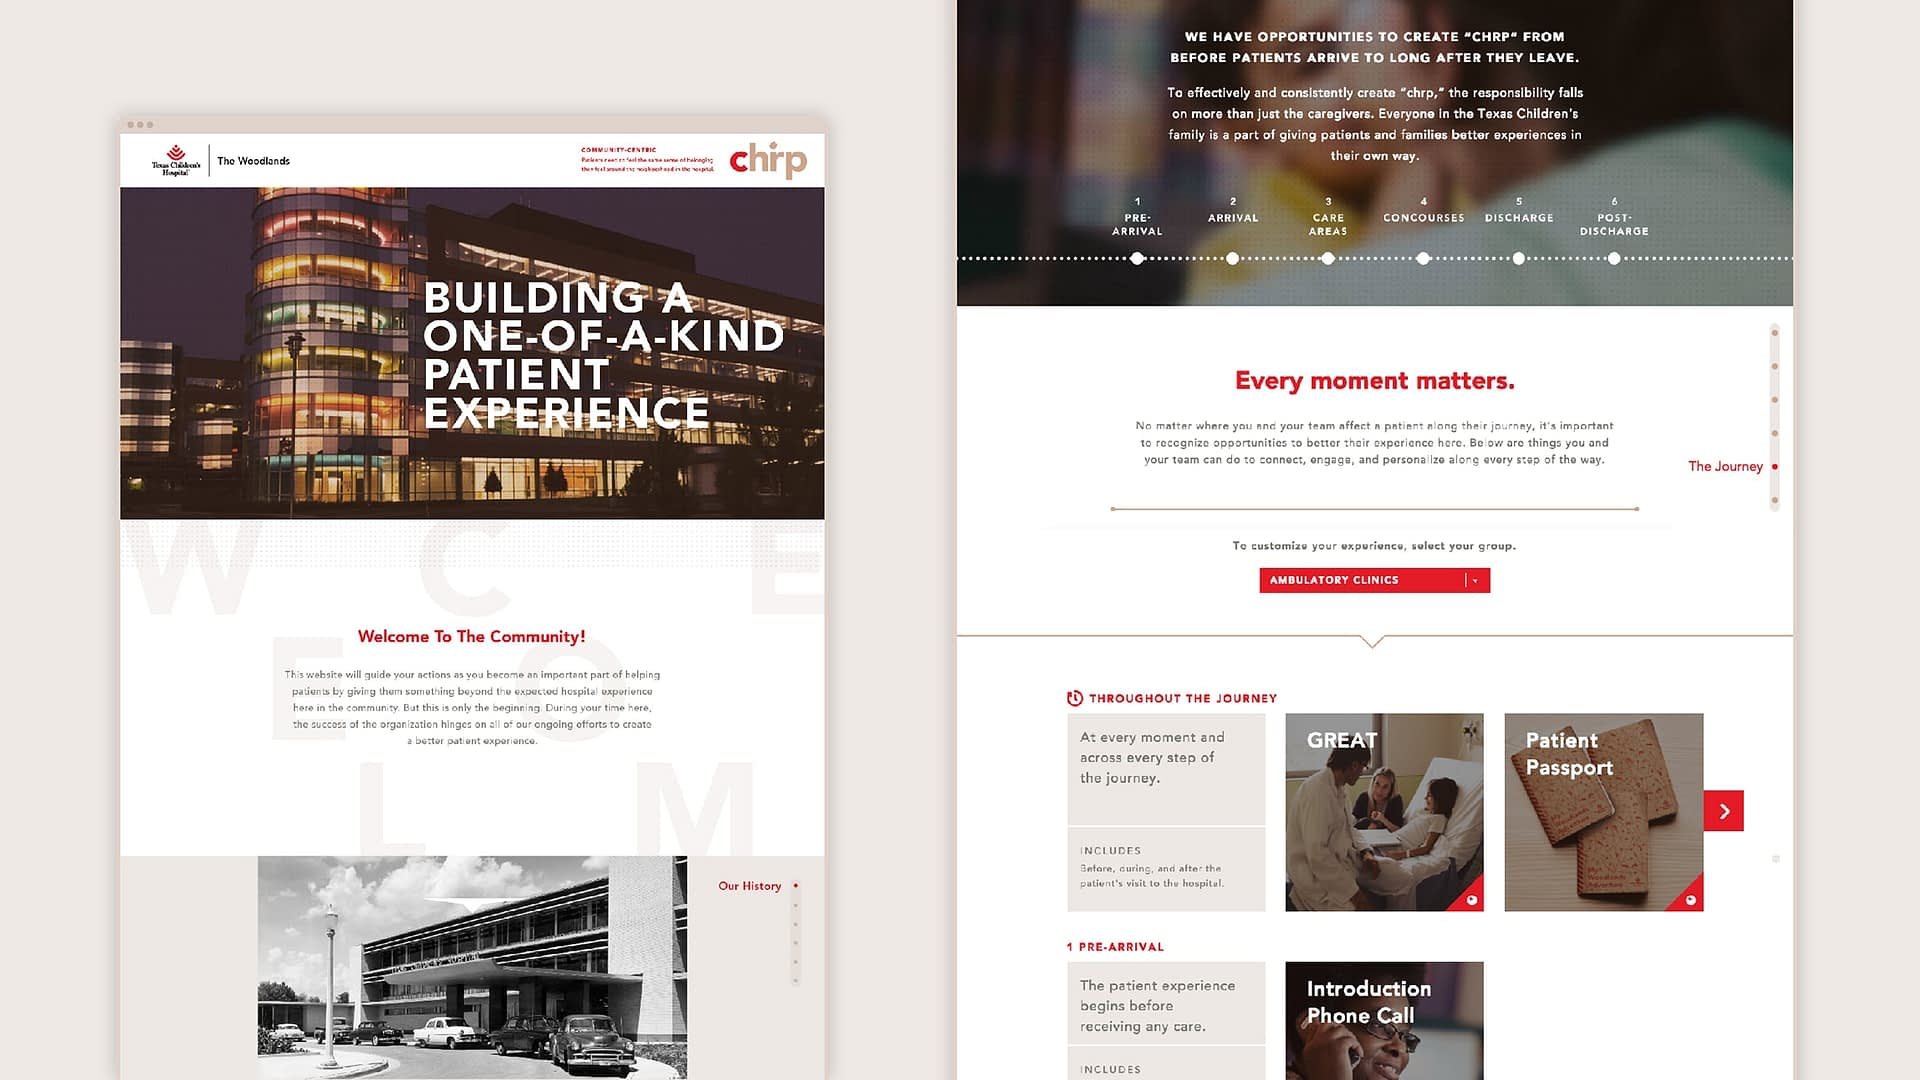 Texas children's website. Part of an internal hospital branding effort for Texas Children's hospital.